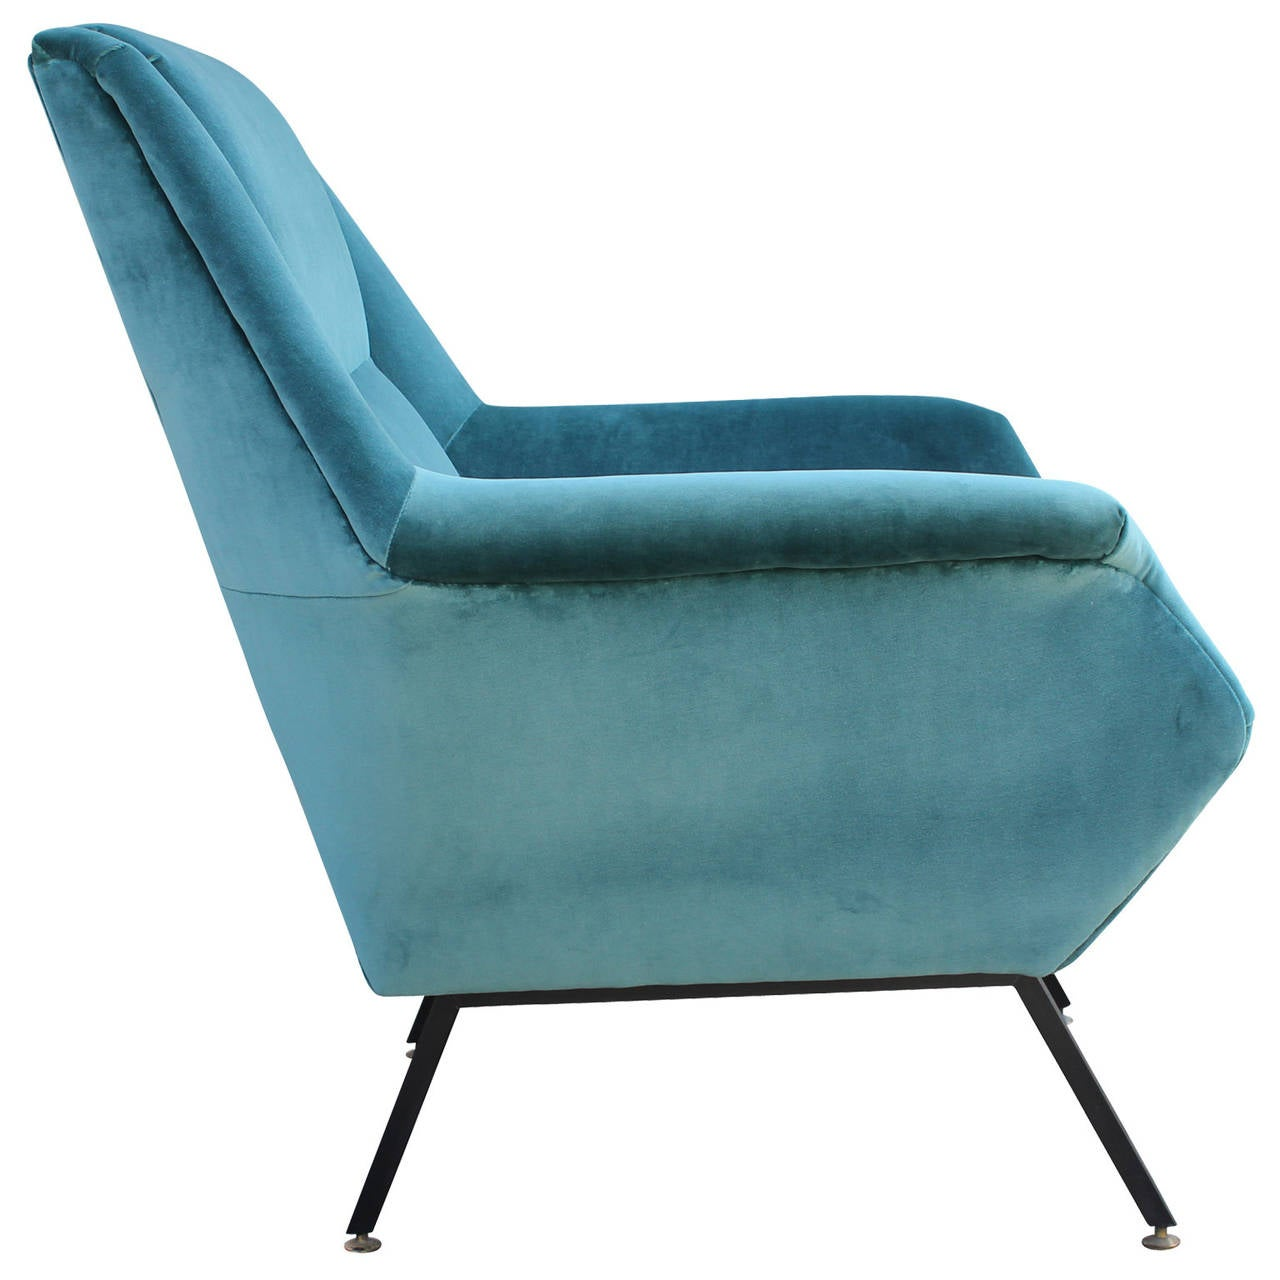 Pair of Fabulous Italian Lounge Chairs in Teal Velvet at 1stdibs